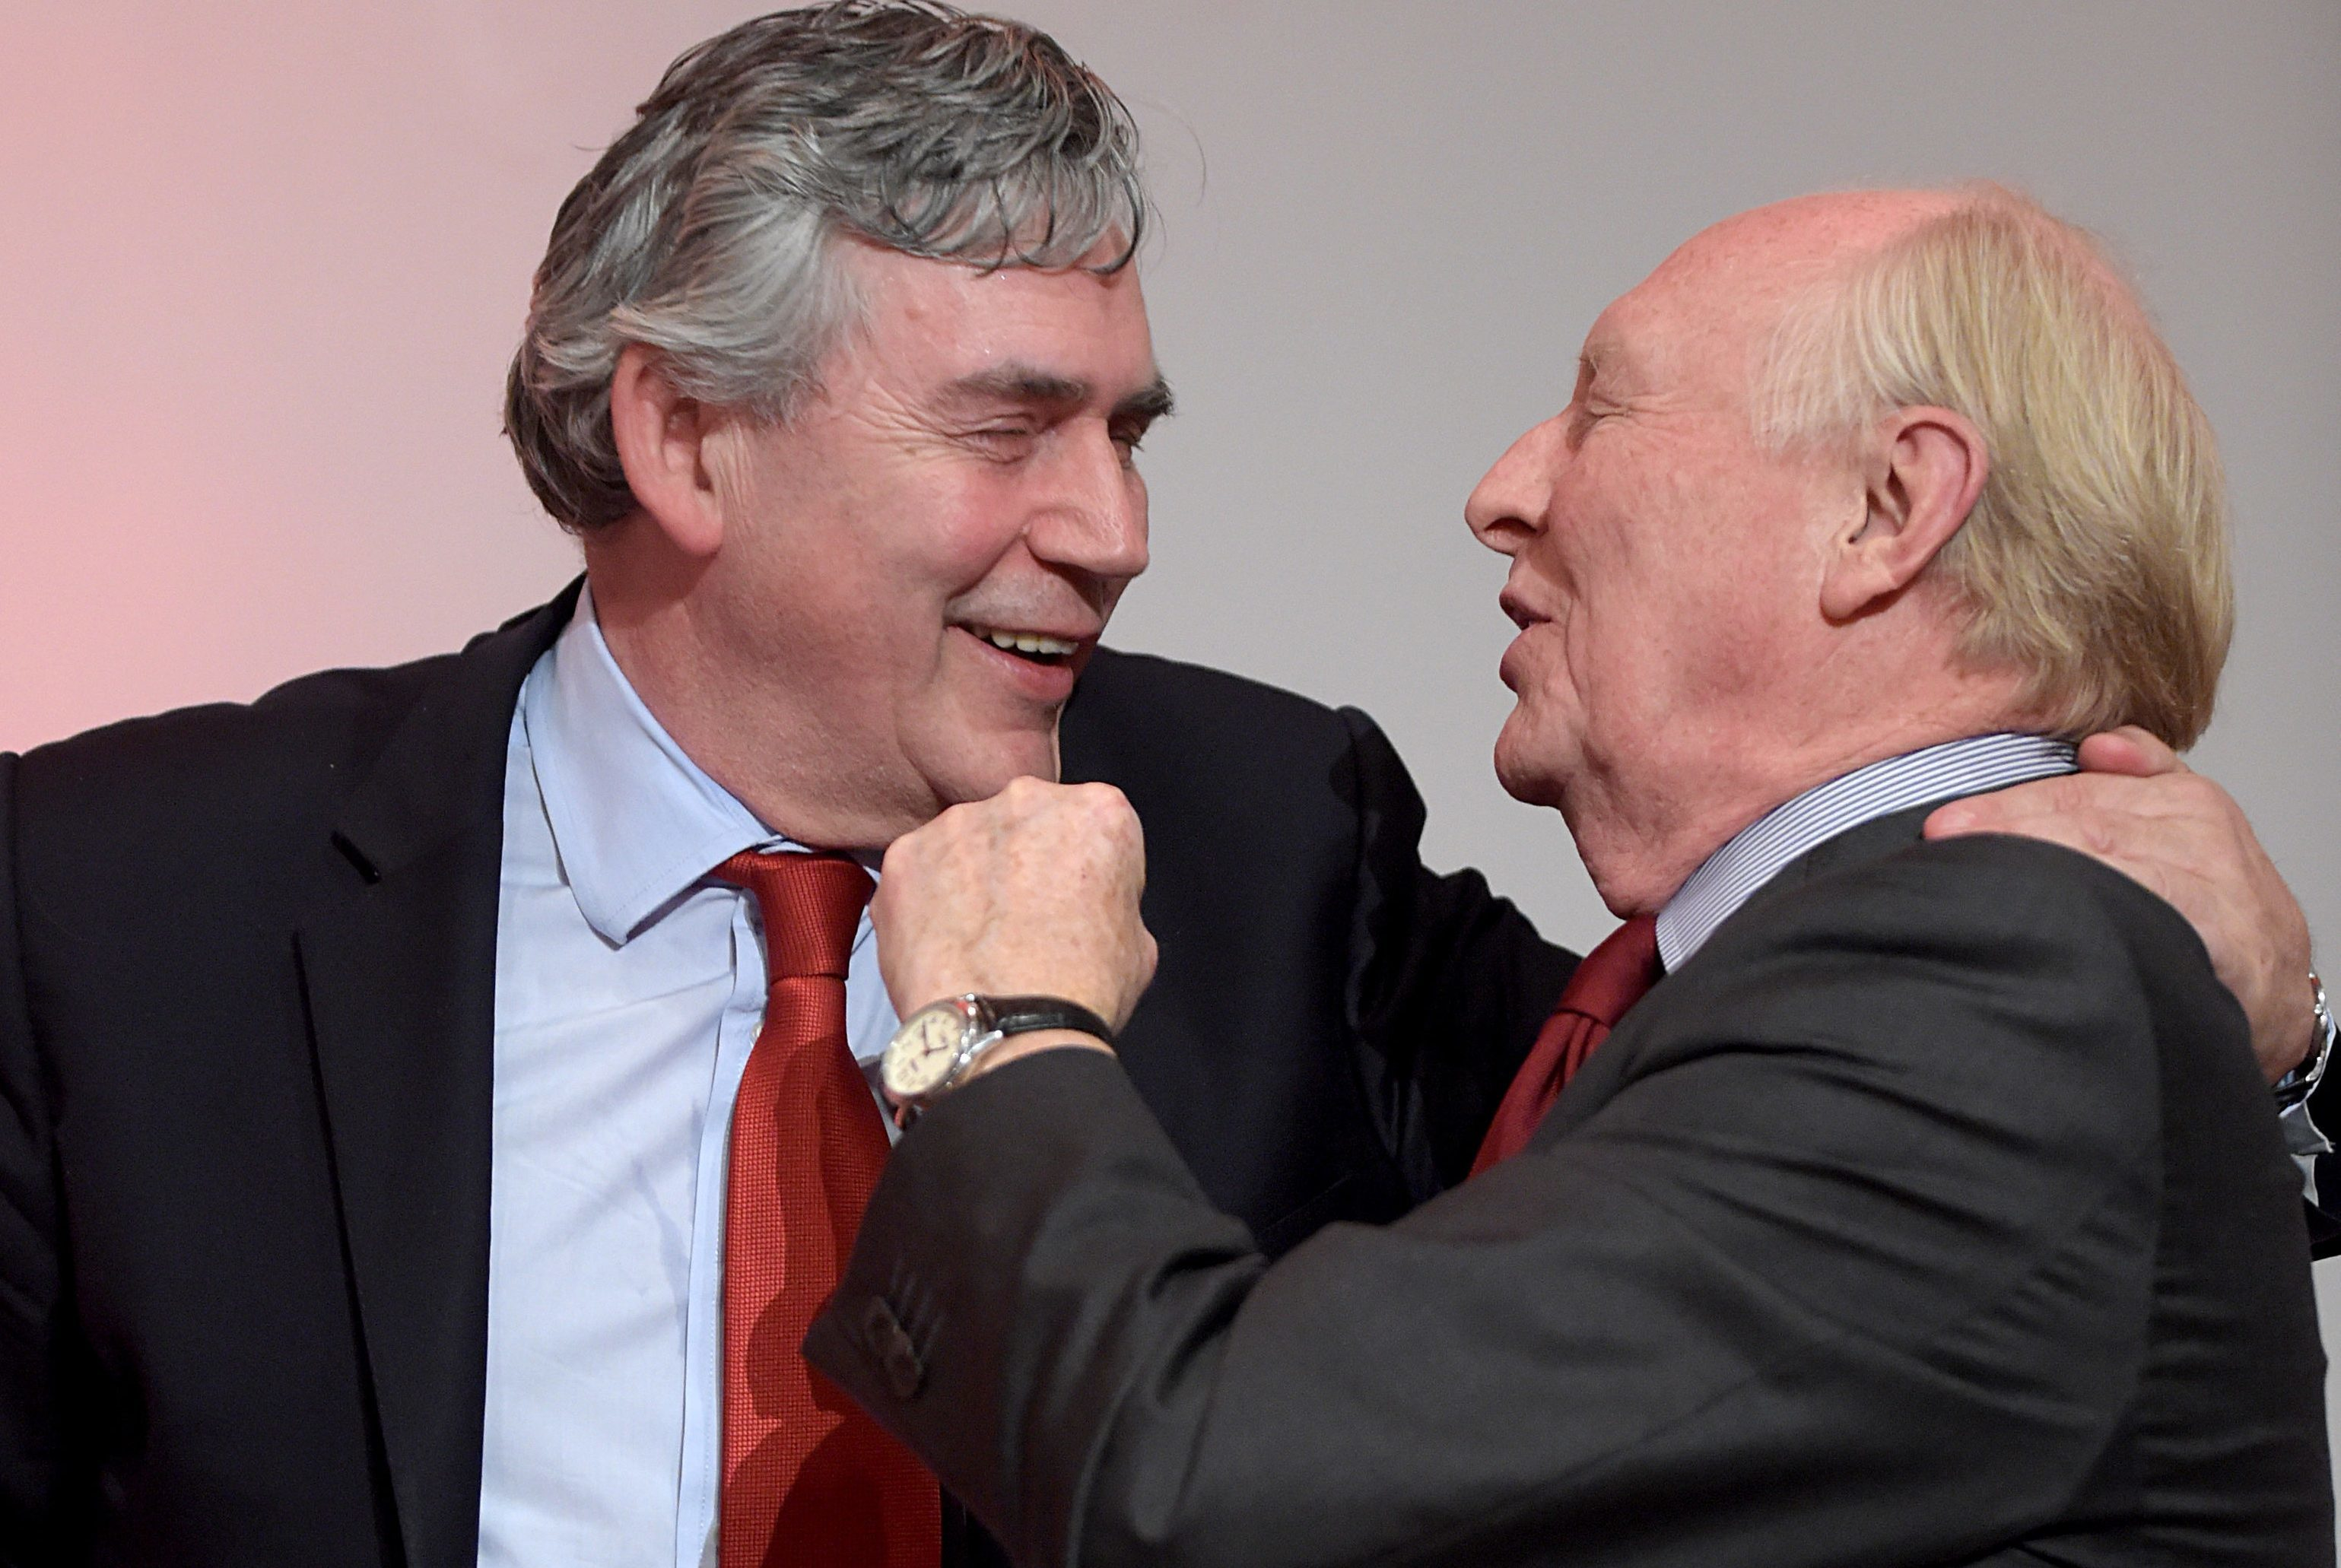 Former Prime Minister Gordon Brown with former Labour leader Neil Kinnock, right, during a Labour Party pro EU rally at the Royal Concert Hall in Glasgow.